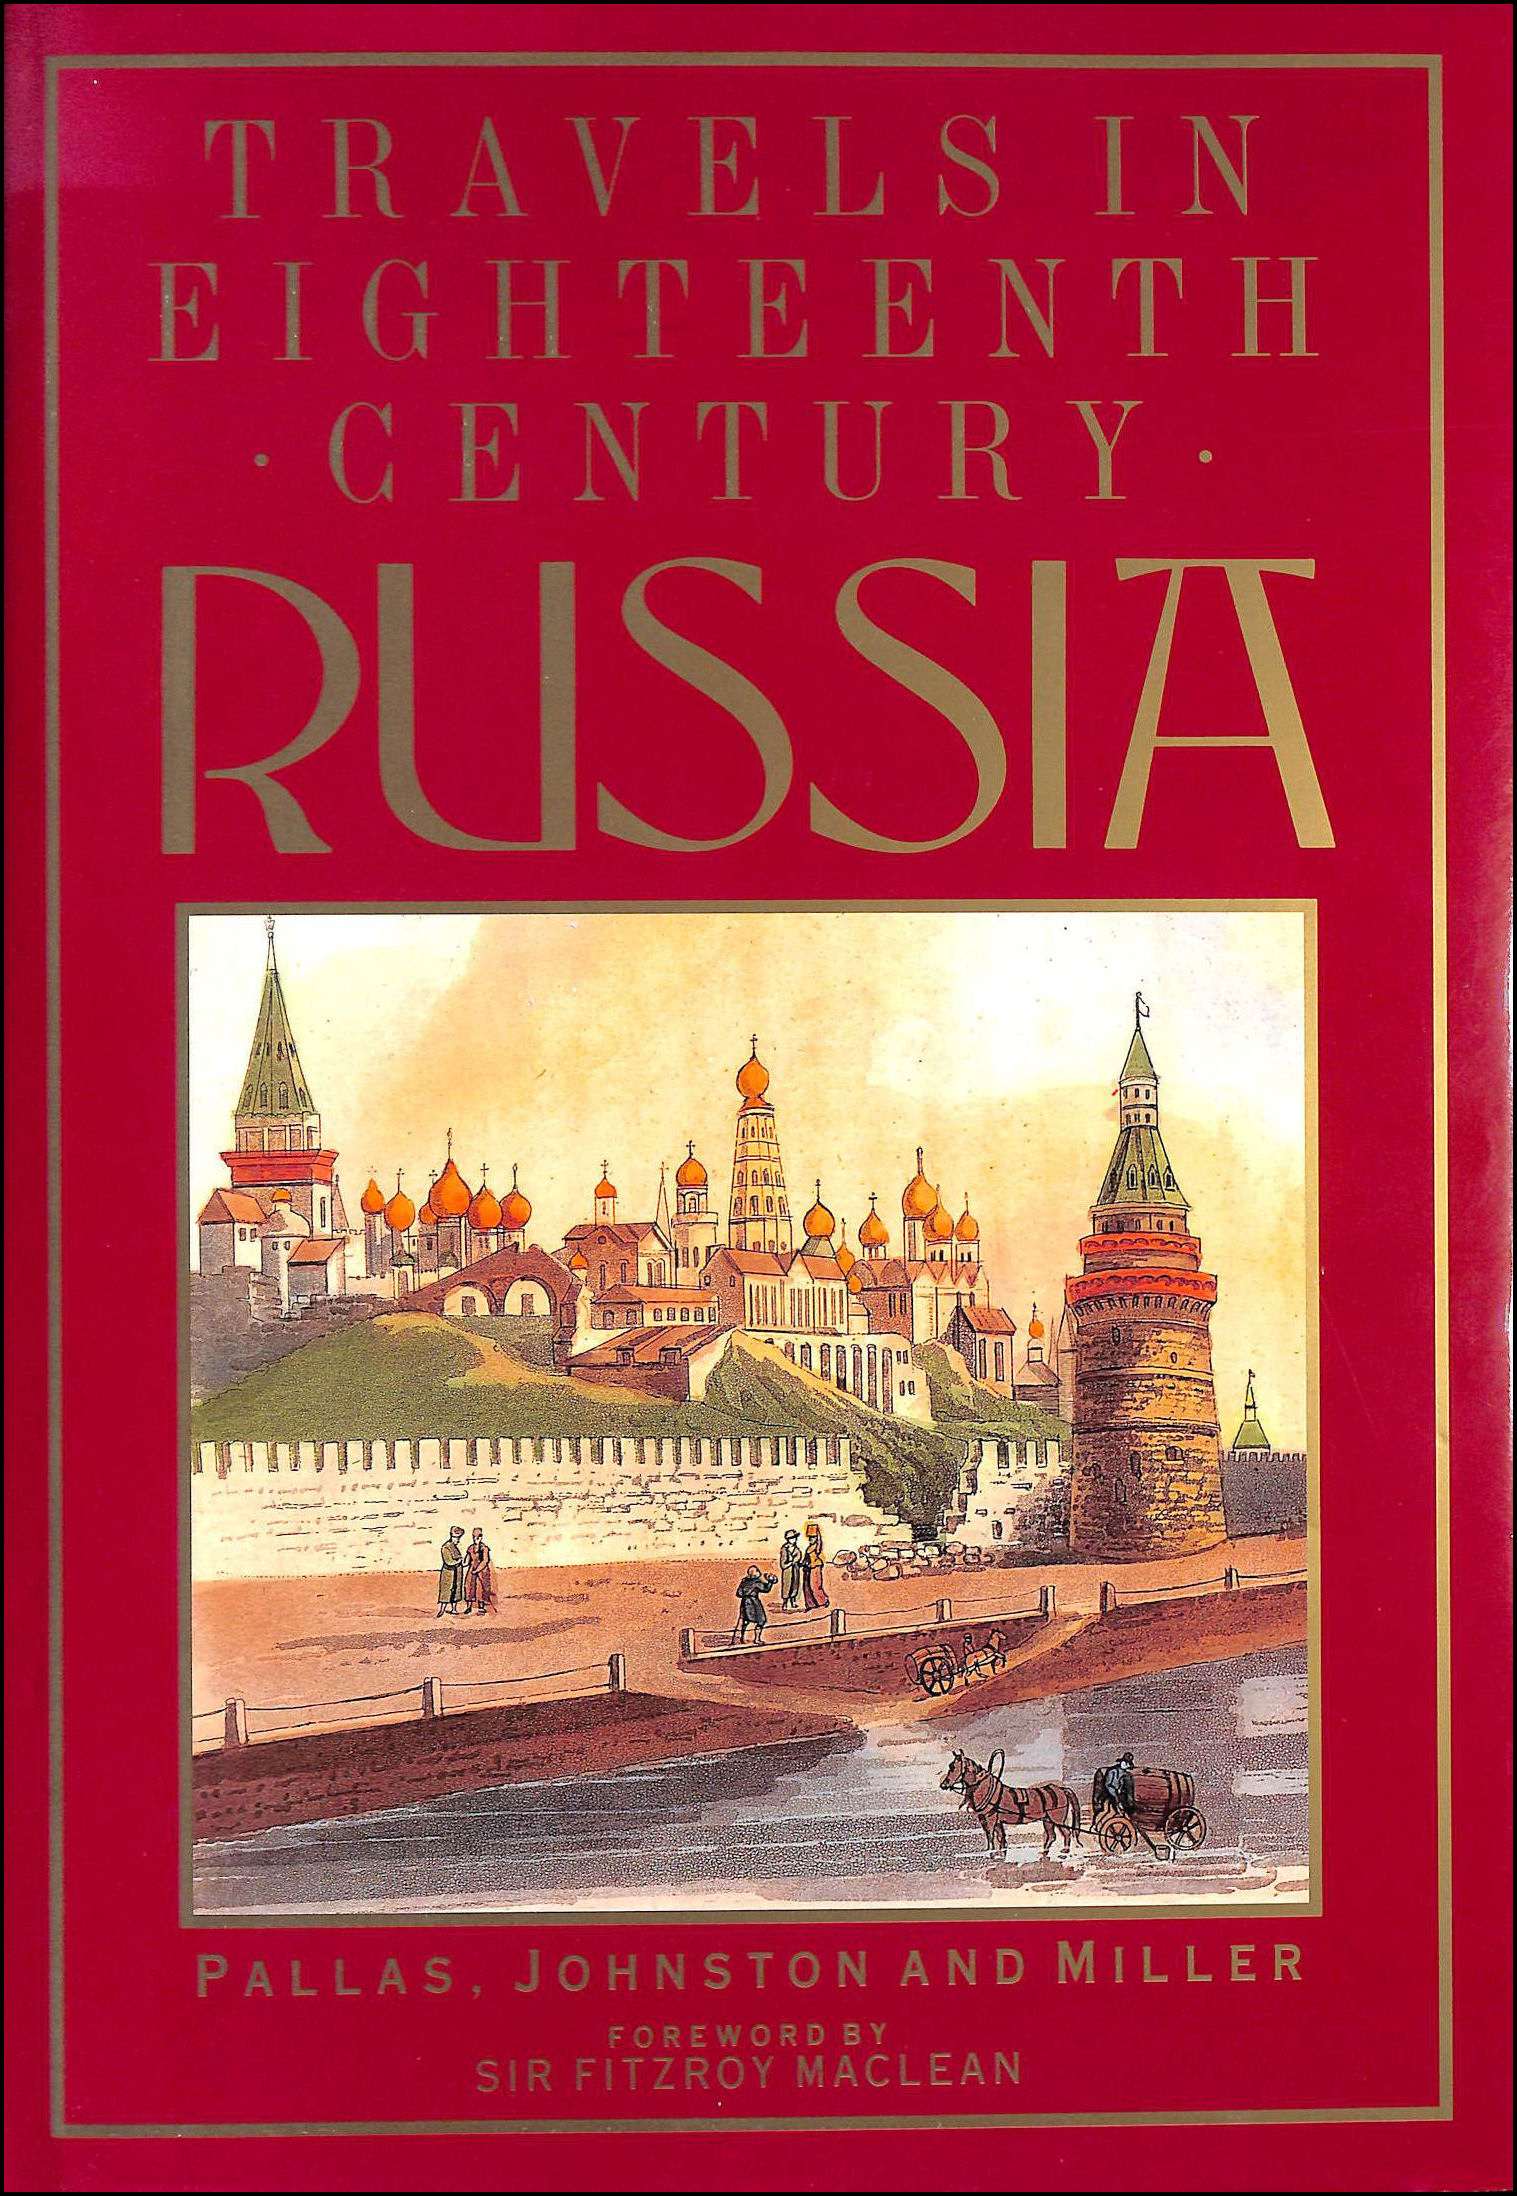 Image for Travels in Eighteenth Century Russia, Costumes, Customs, History